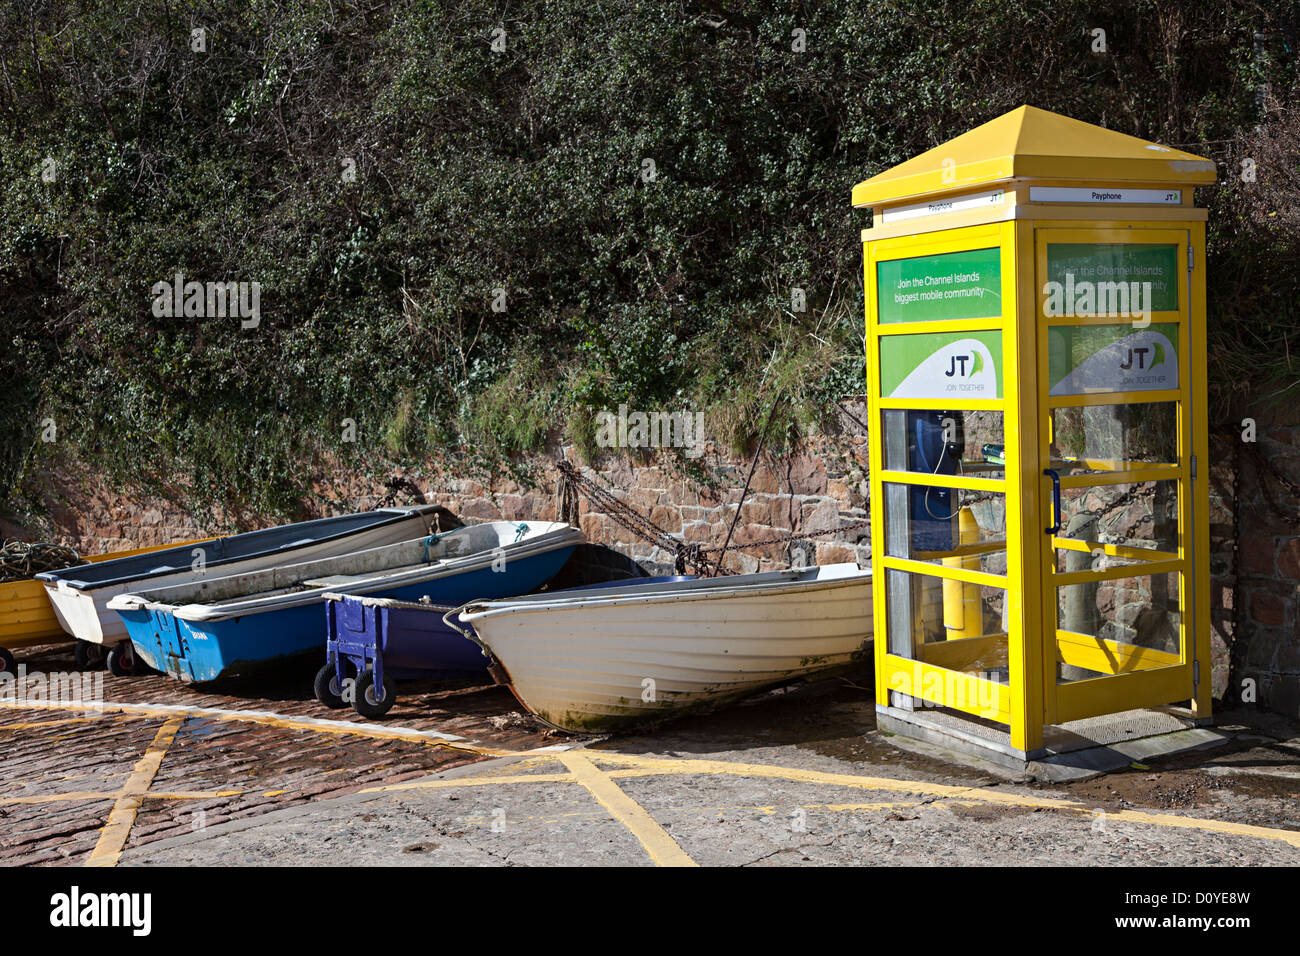 Yellow telephone kiosk, Bonne Nuit, Jersey, Channel Islands, UK - Stock Image